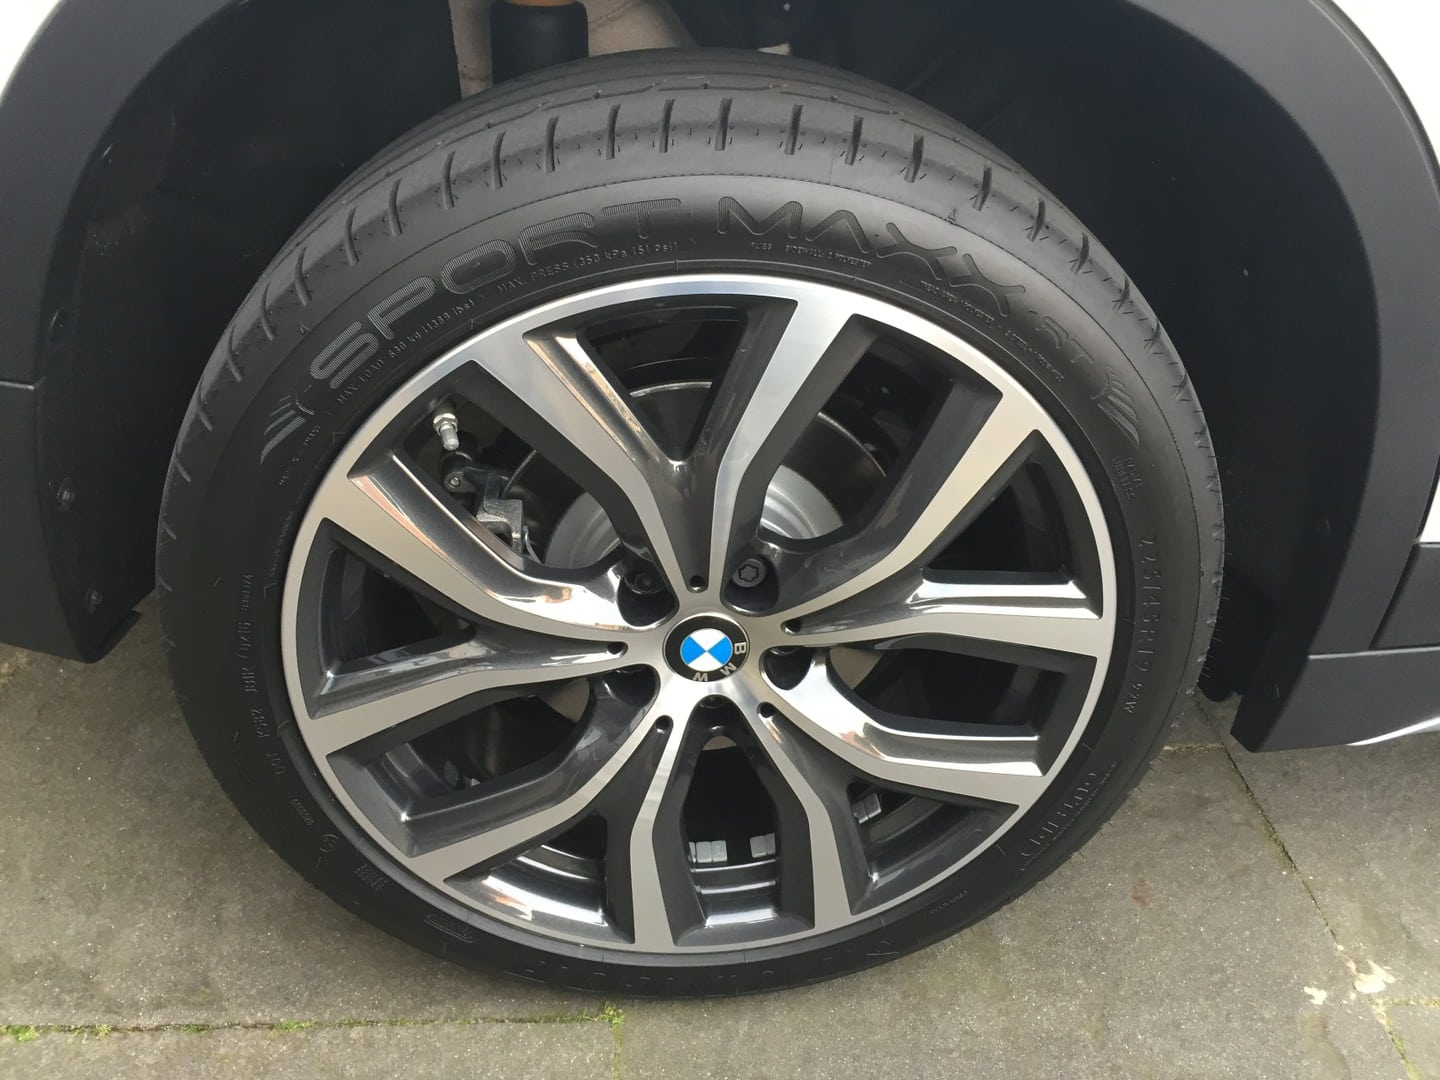 Switched To NON RUN FLAT TIRES - Bmw 328i run flat tires